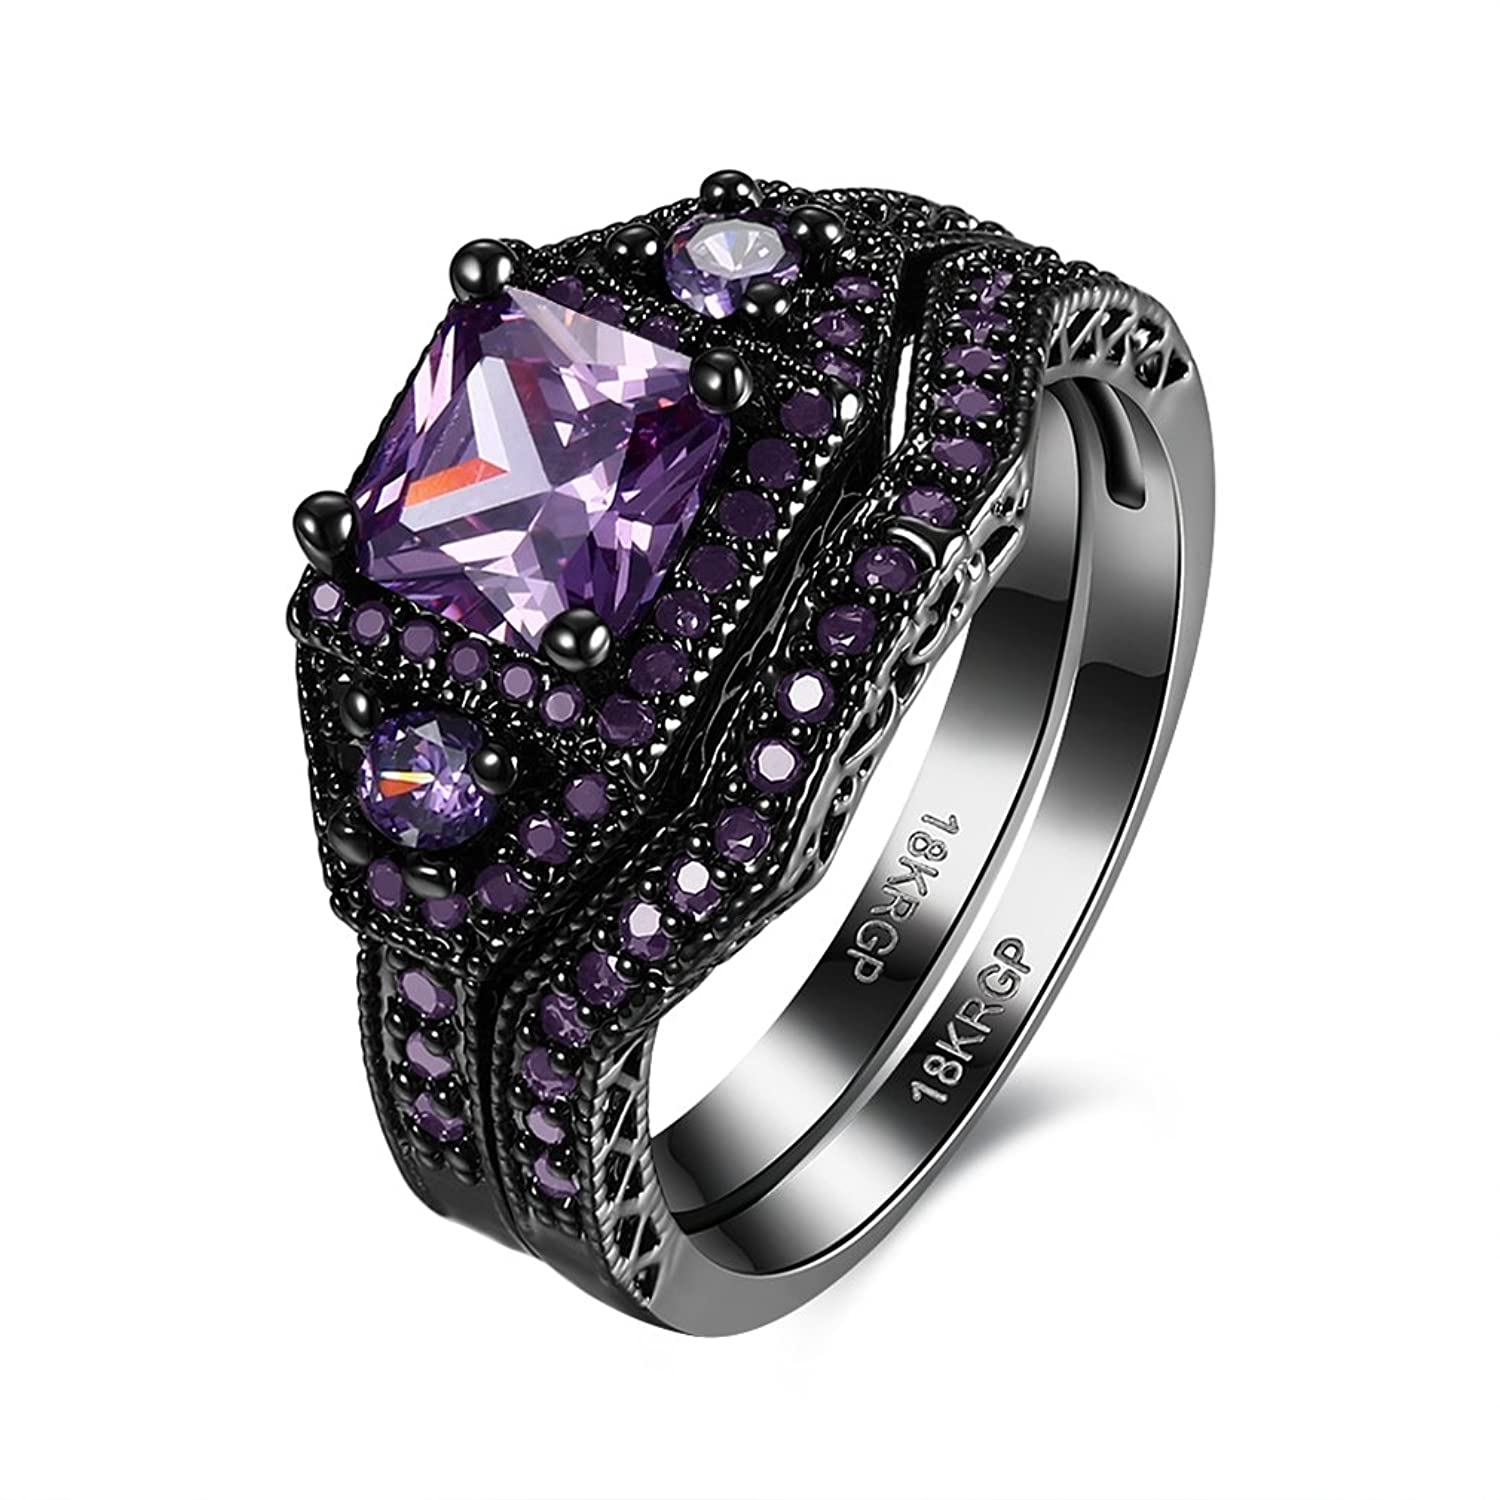 j rings diamond and jewelry purple ring marisa for master engagement pave id sale perry micro at amethyst casablanca